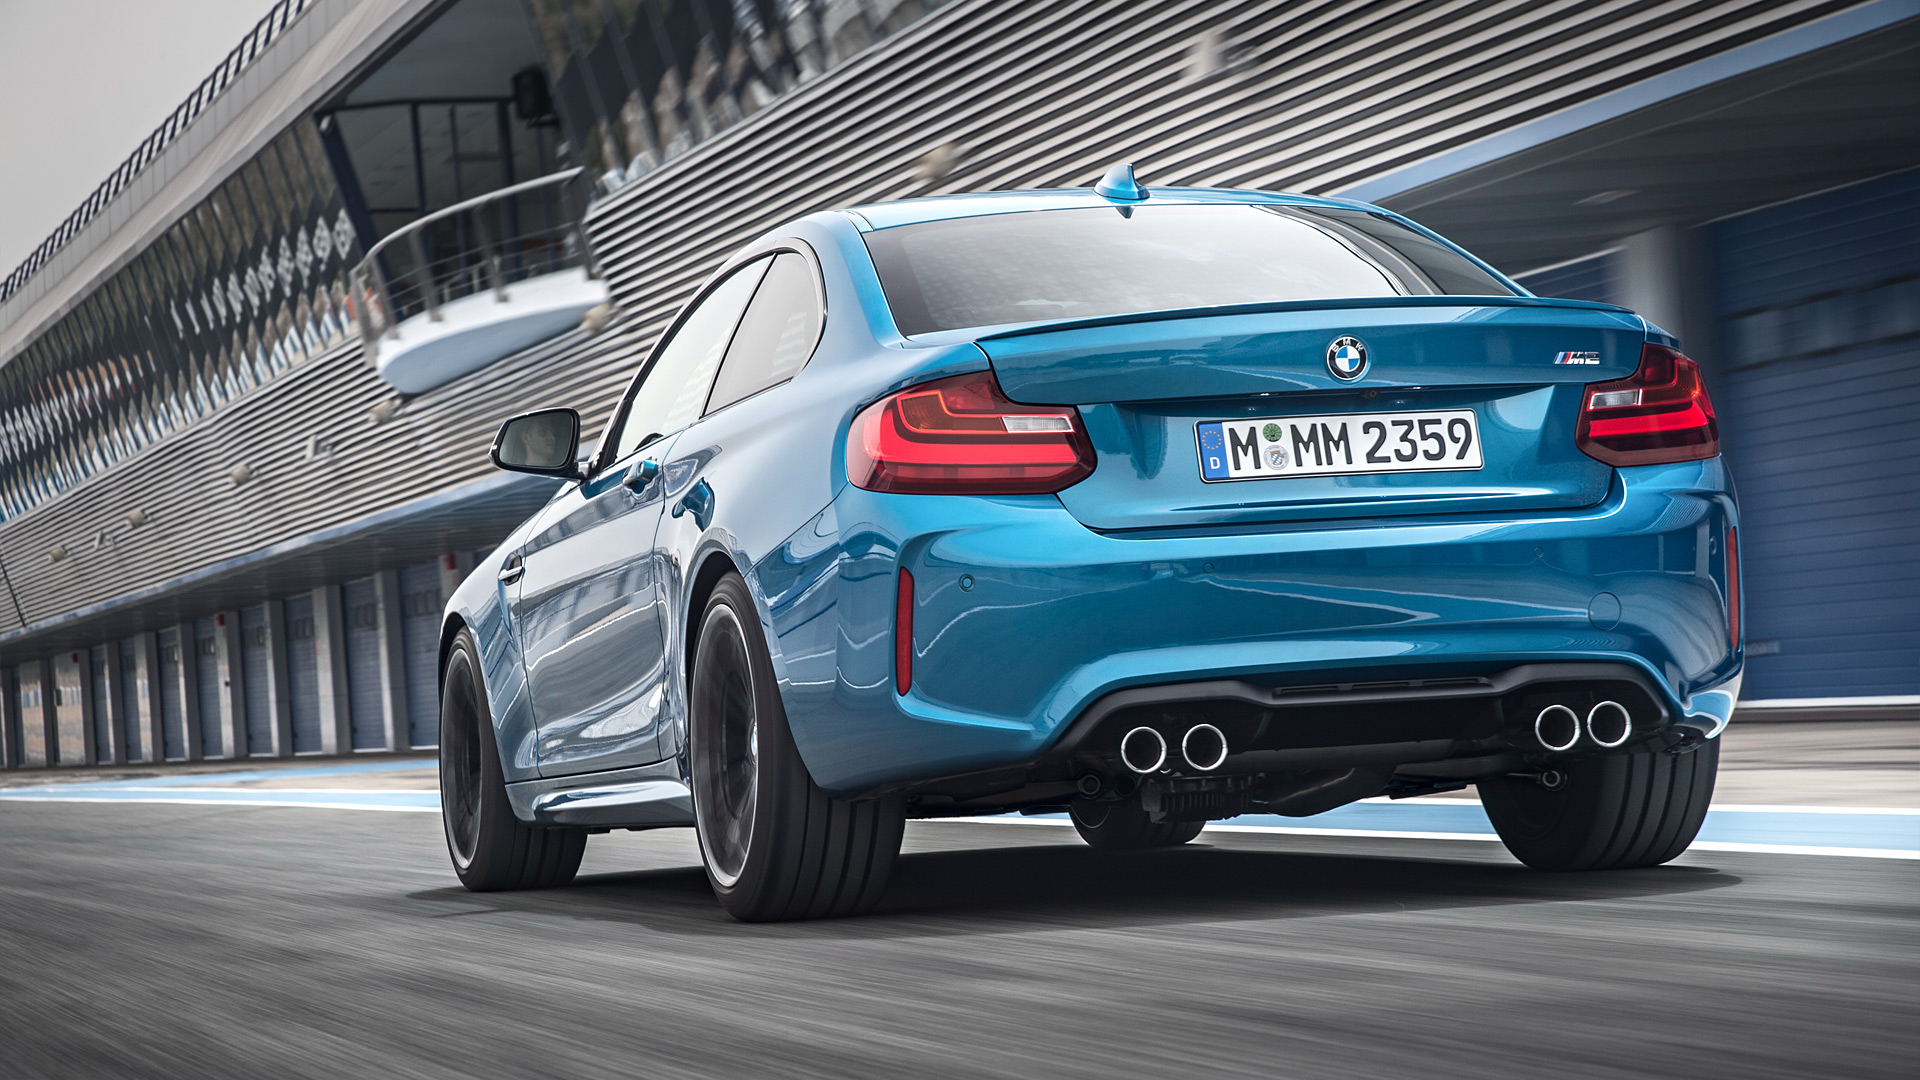 1920x1080 - BMW M2 Coupe Wallpapers 1